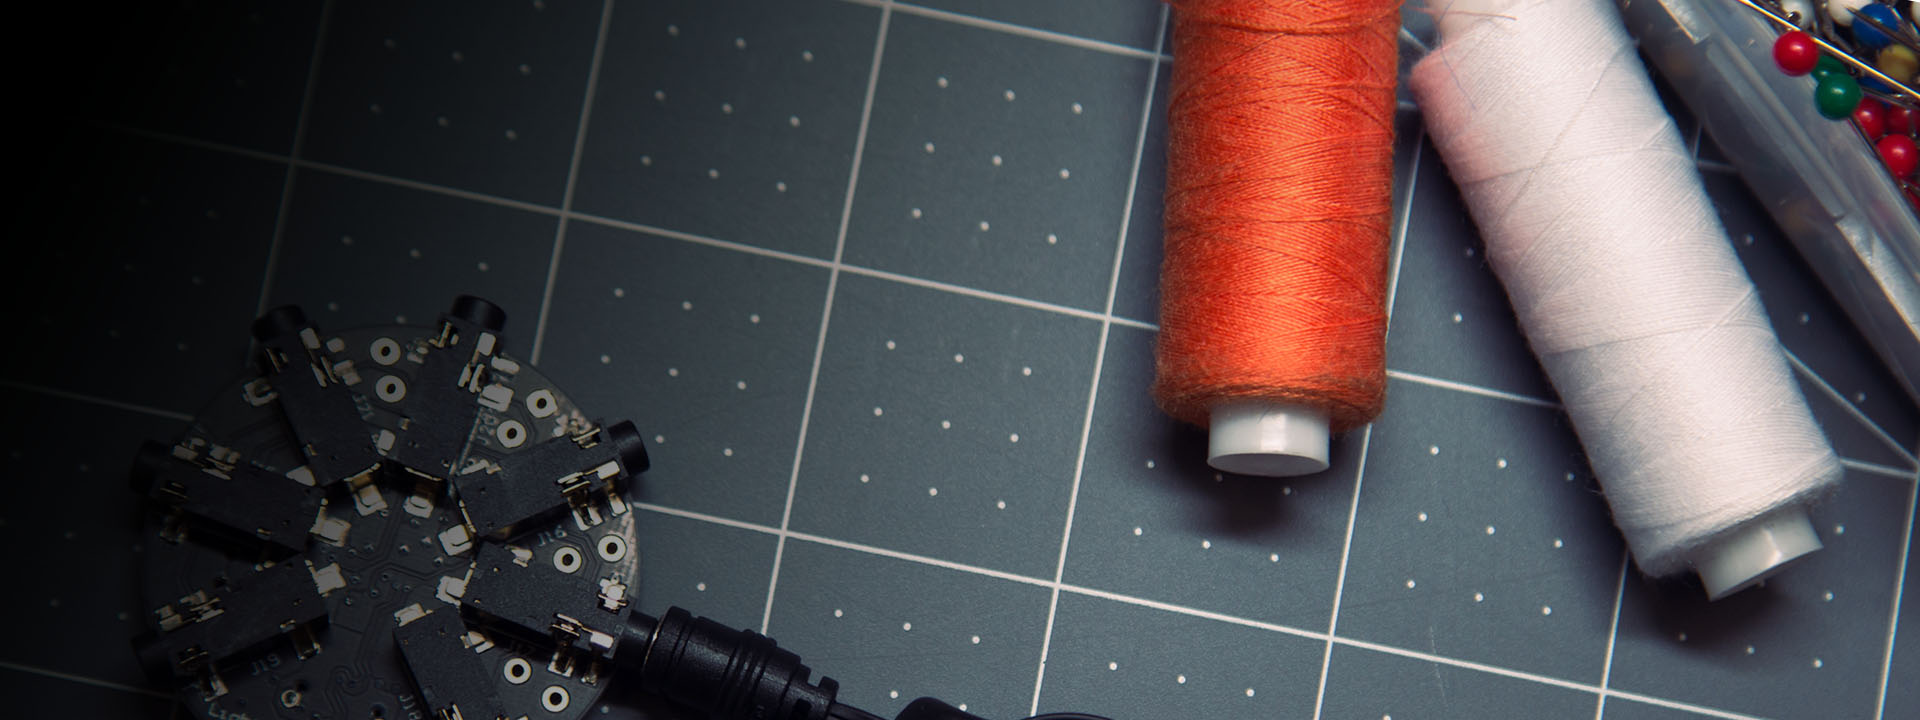 Project Brookdale: photo of a round circuit, spools of orange and white thread, and a box of colorful beads